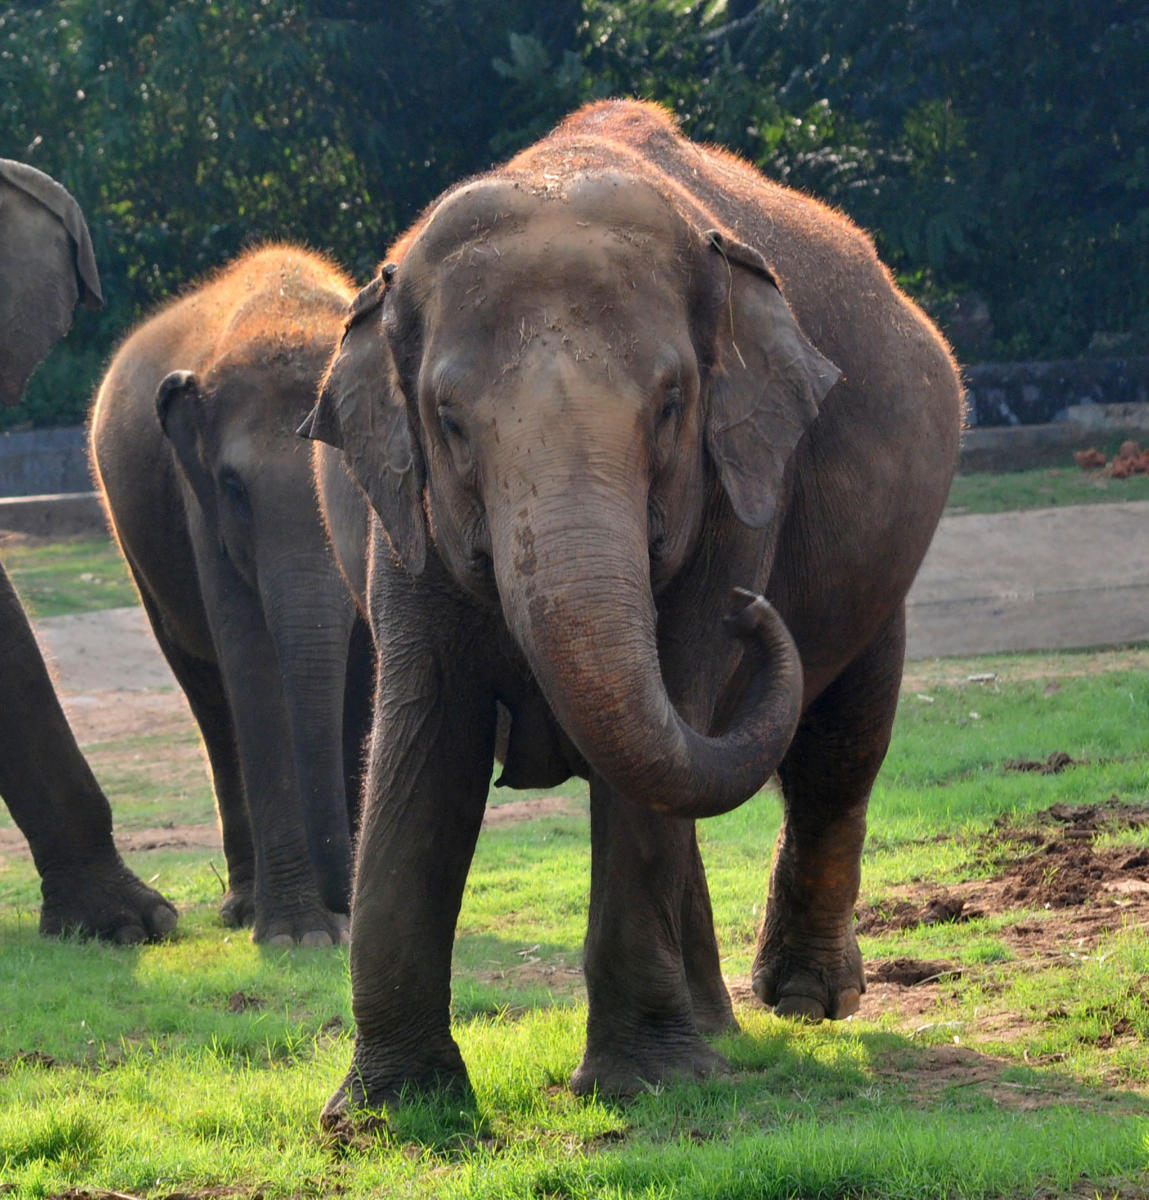 India is home to an estimated 27,312 elephants, according to the 2017 elephant census.